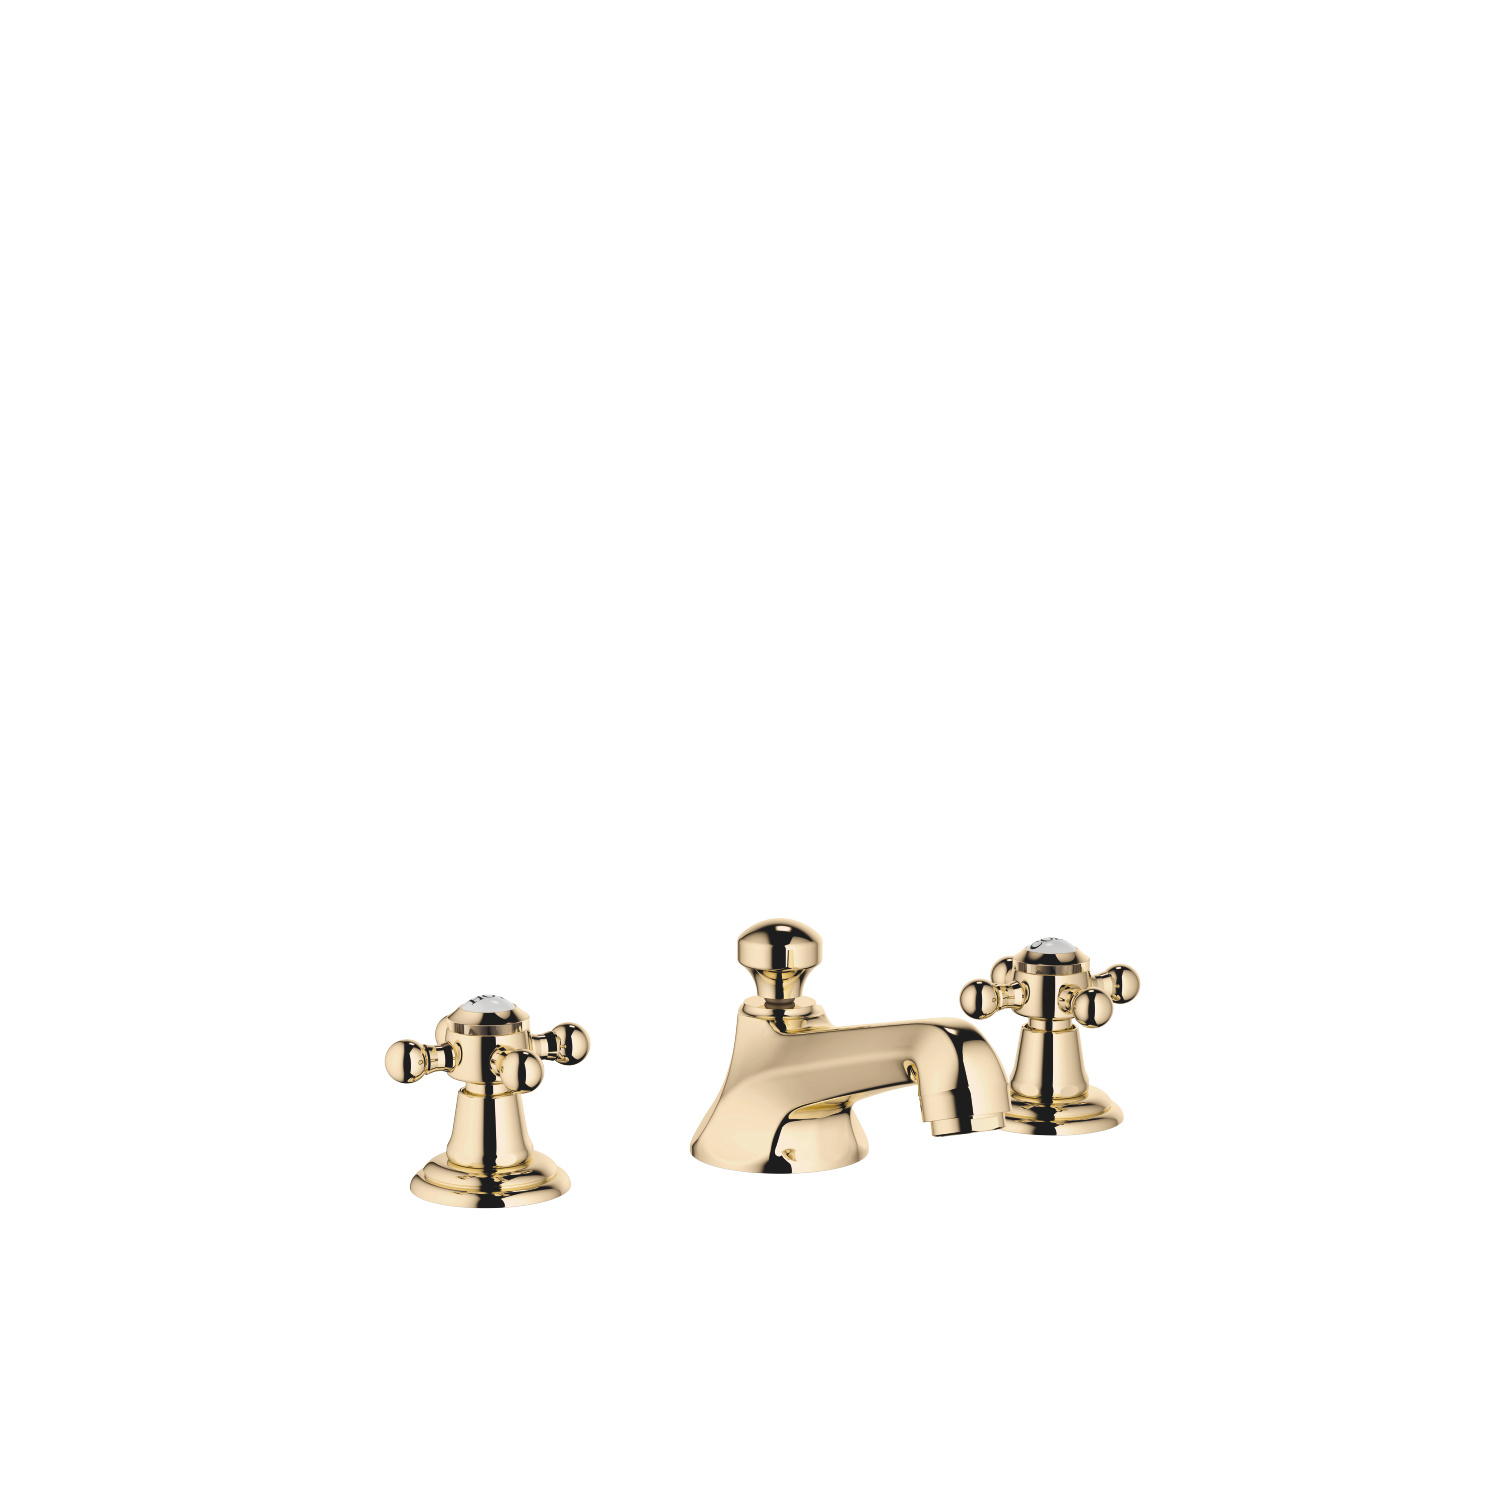 Three-hole basin mixer with pop-up waste - Durabrass - 20 700 360-09